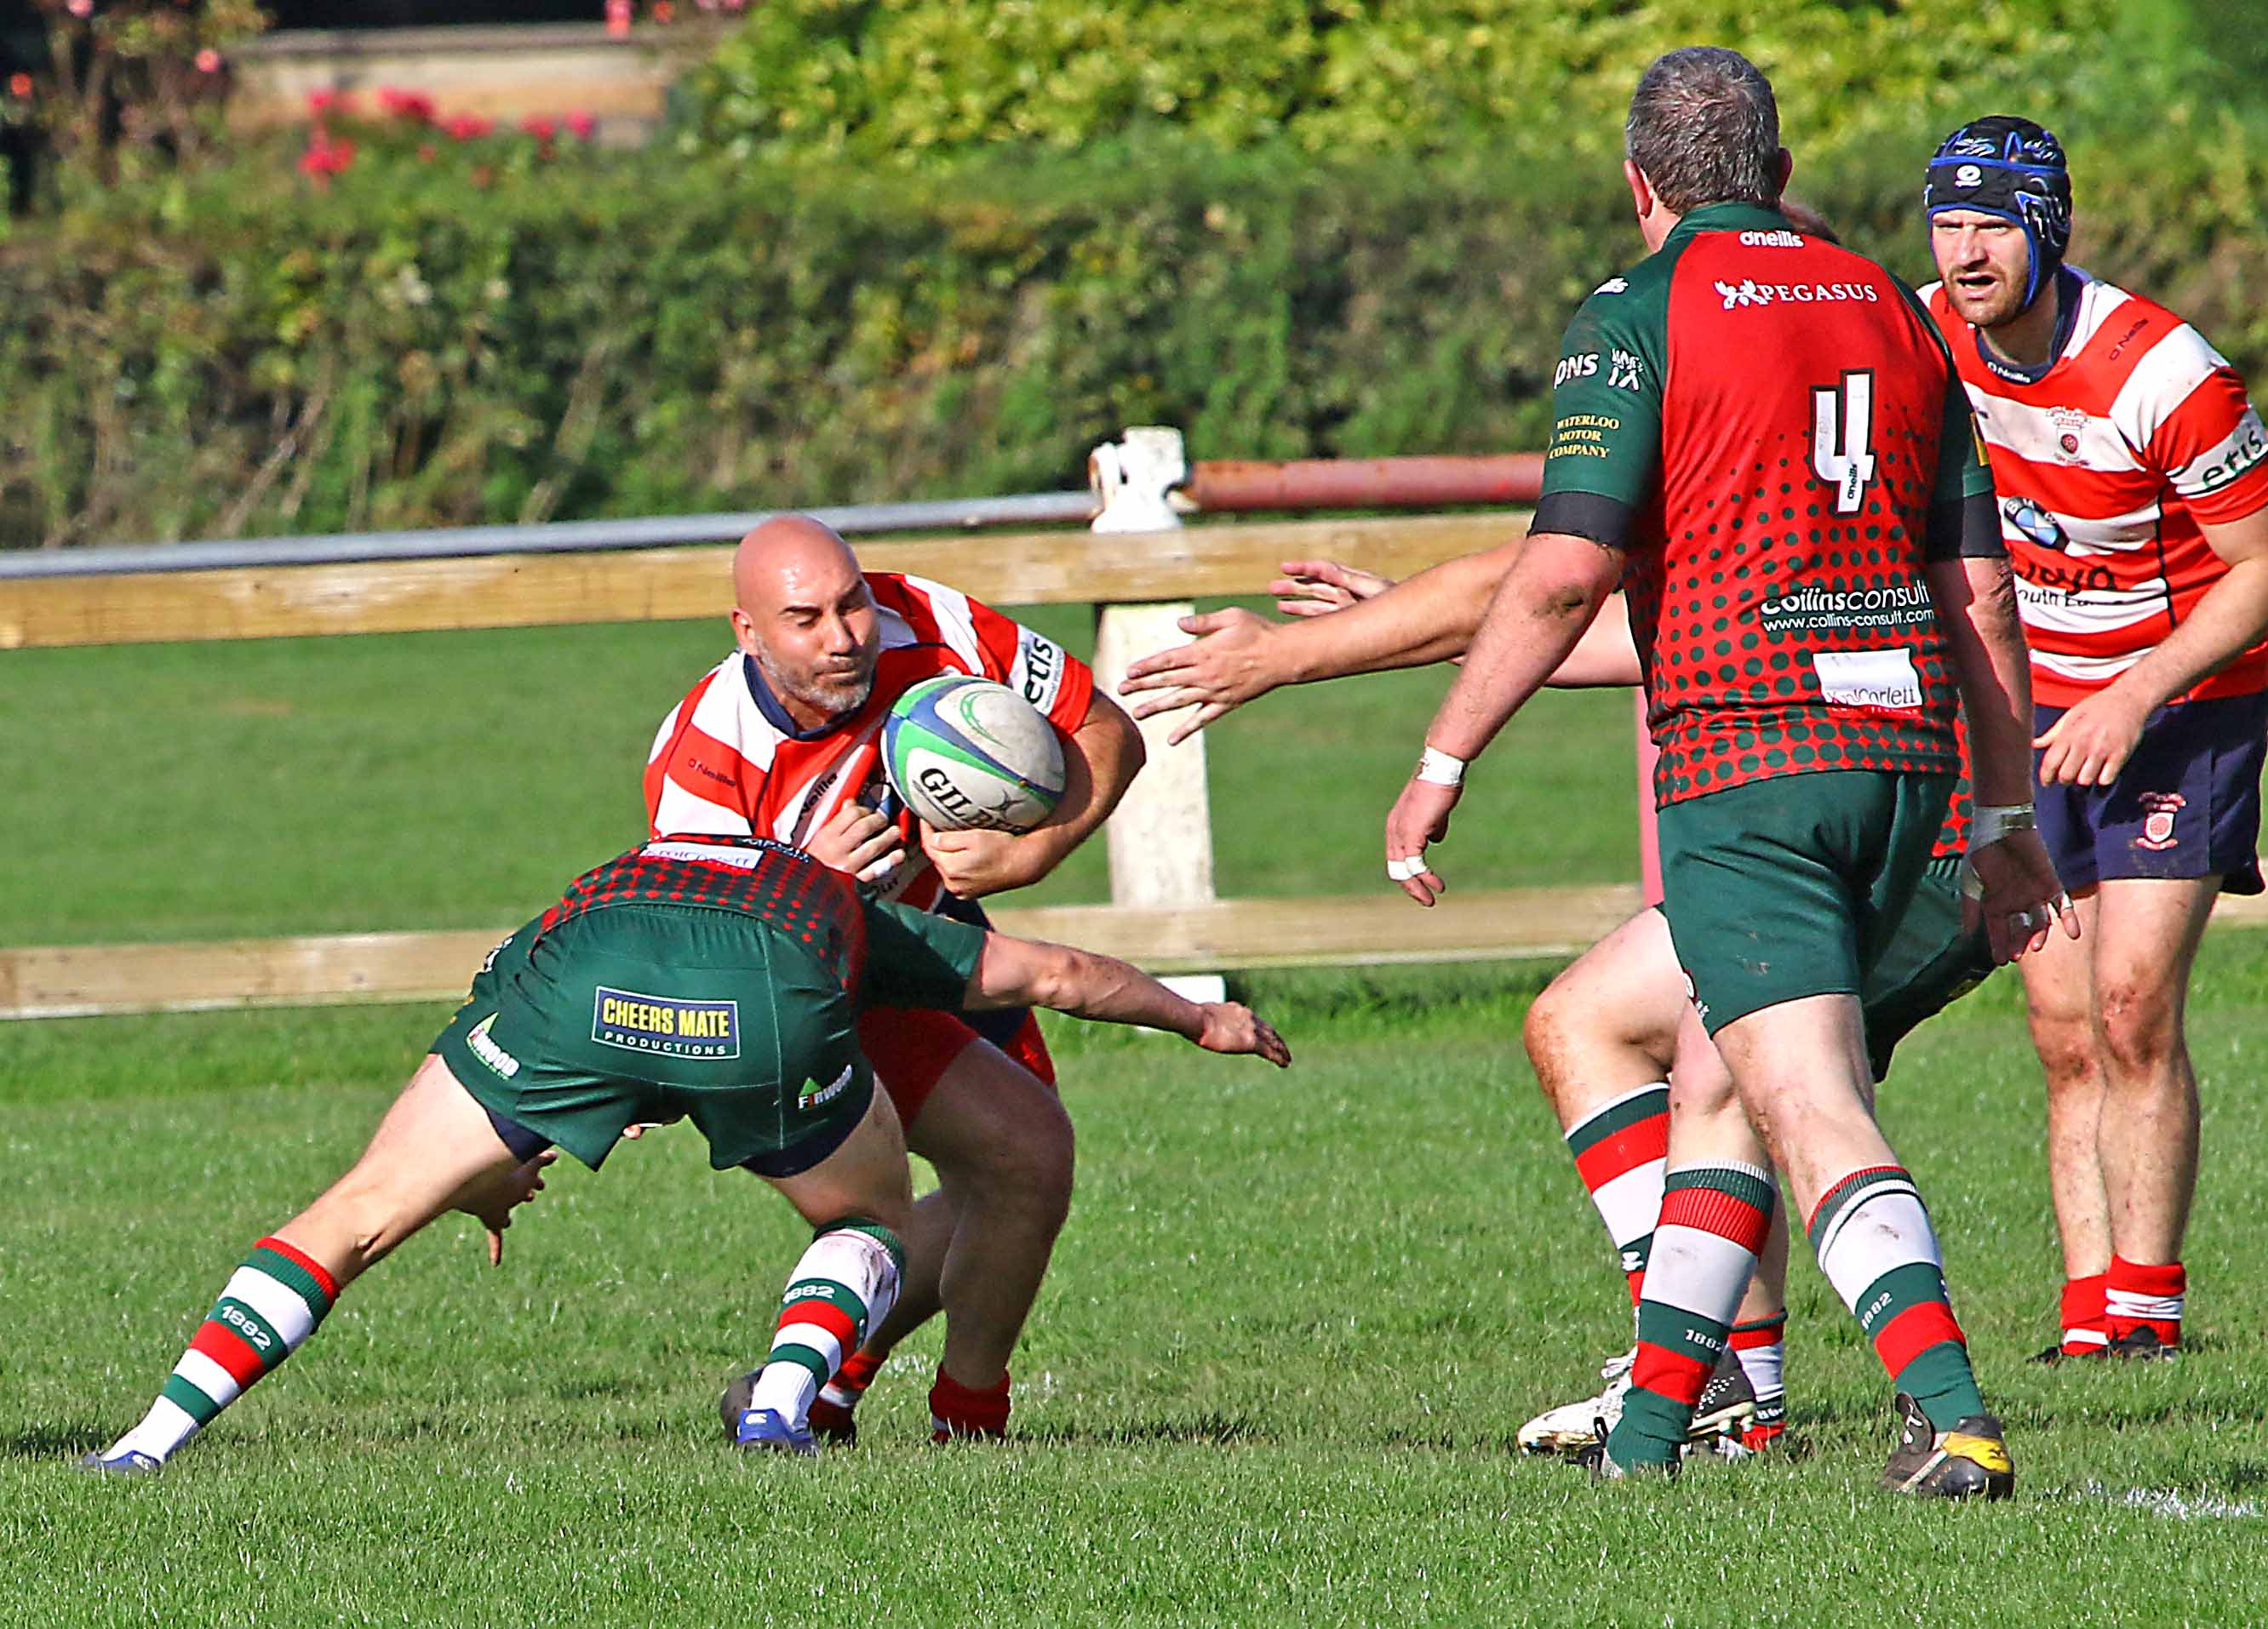 Vale of Lune 2nd XV 29pts v 15pts Firwoodwaterloo 2nd Xv Pictures by Vales Chief Photographer Tony North Incorrect data type for operator or @Function: Time/Date expected